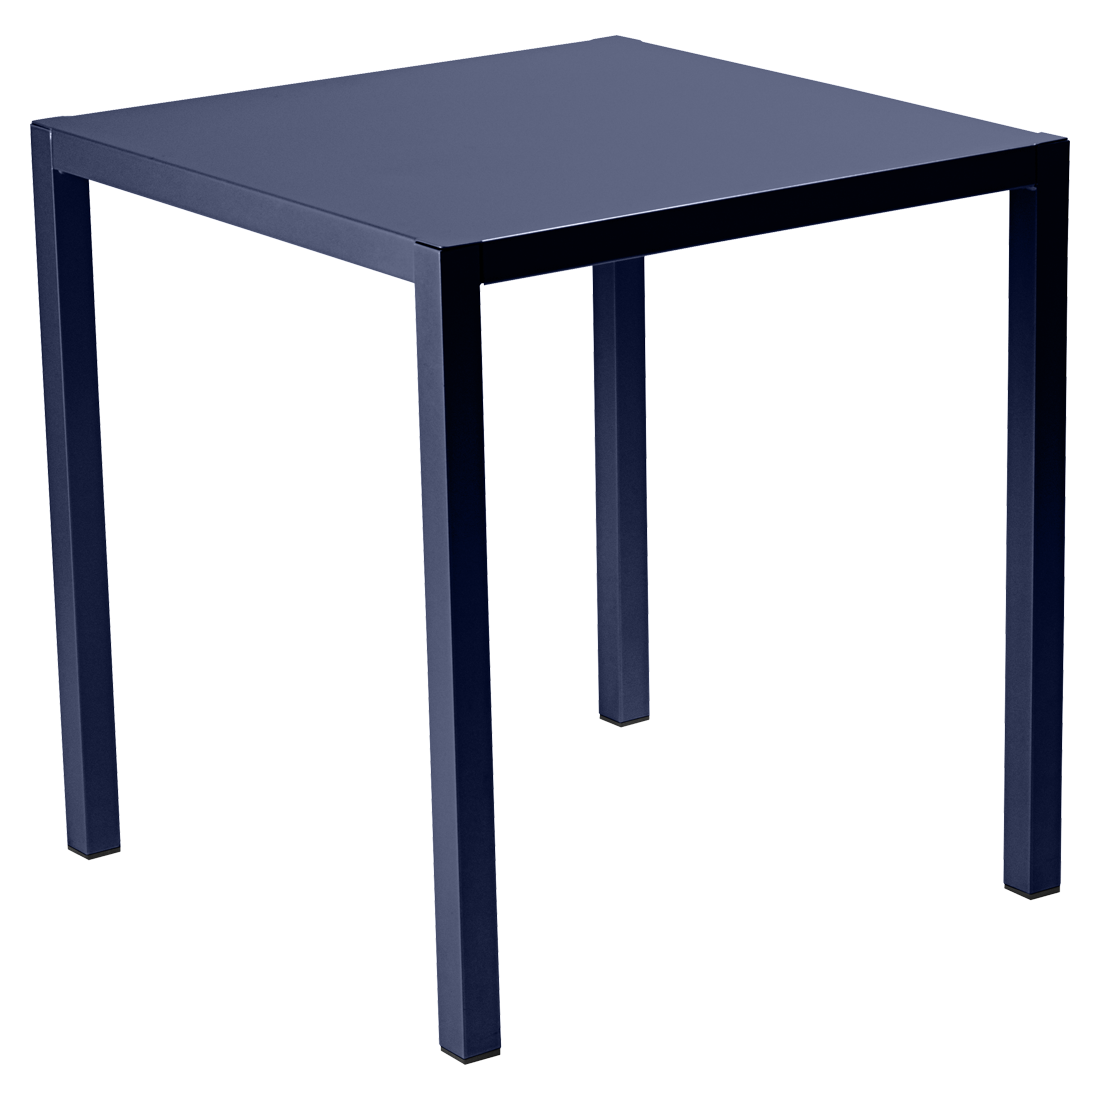 table design, table putman, table de jardin, table metal, table beu